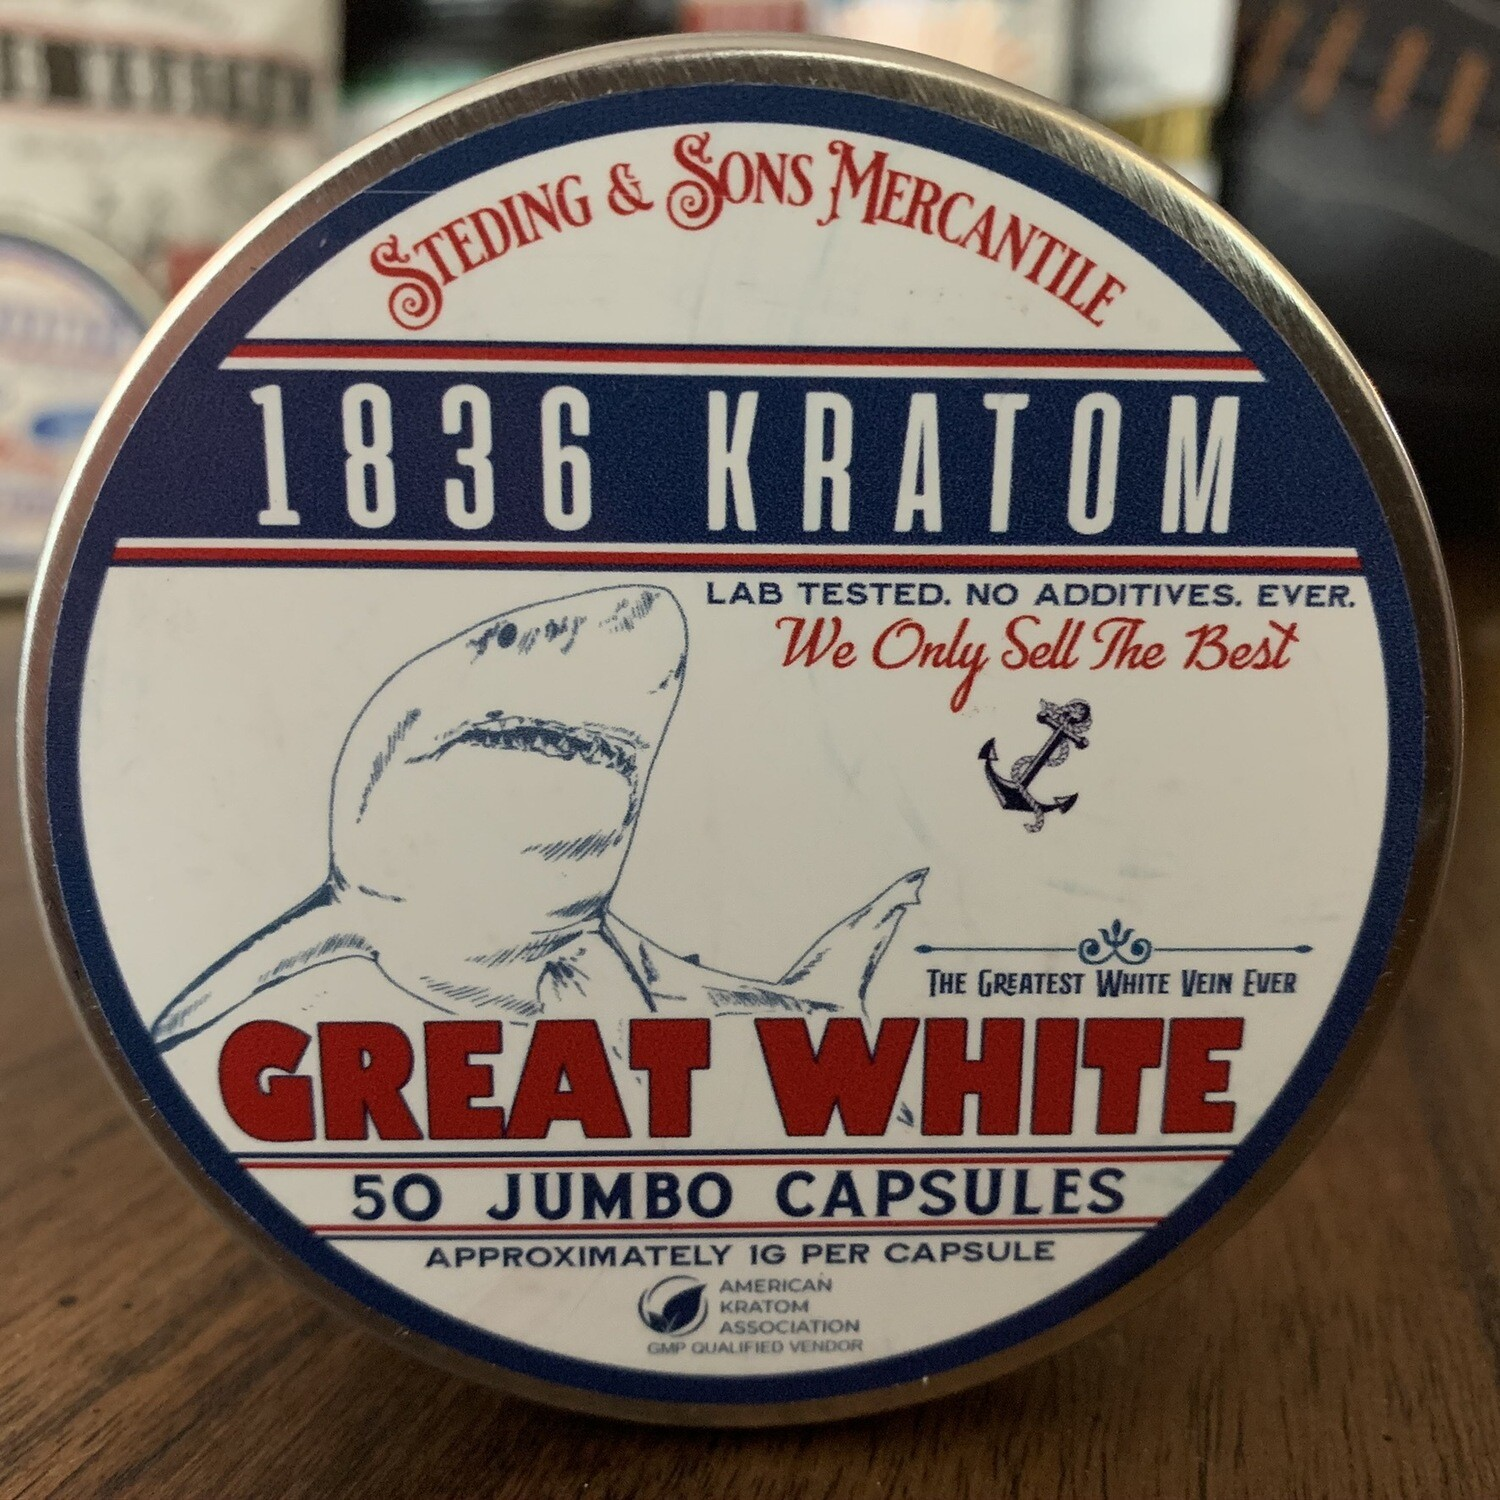 Jumbo Capsules - Great White - 3 Sizes!